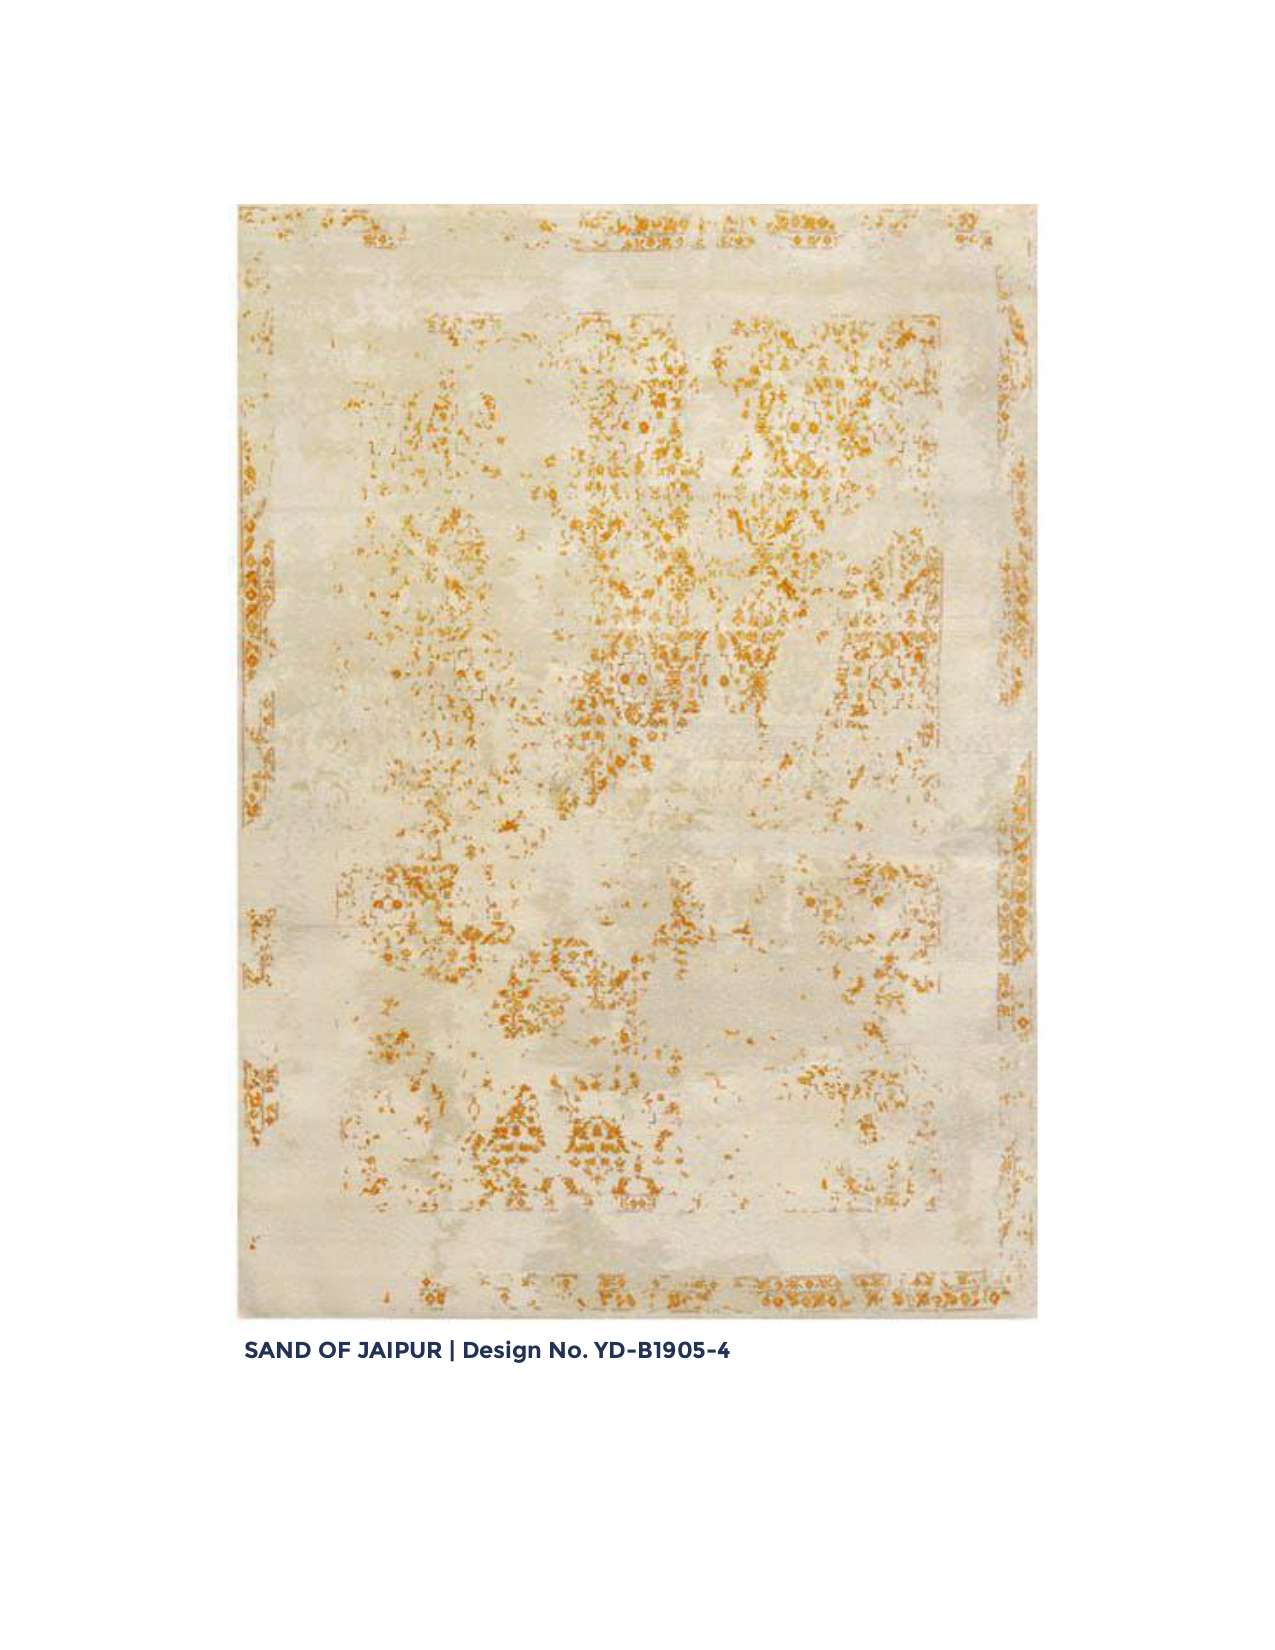 Hand_Knotted_CC_1905_9.jpg